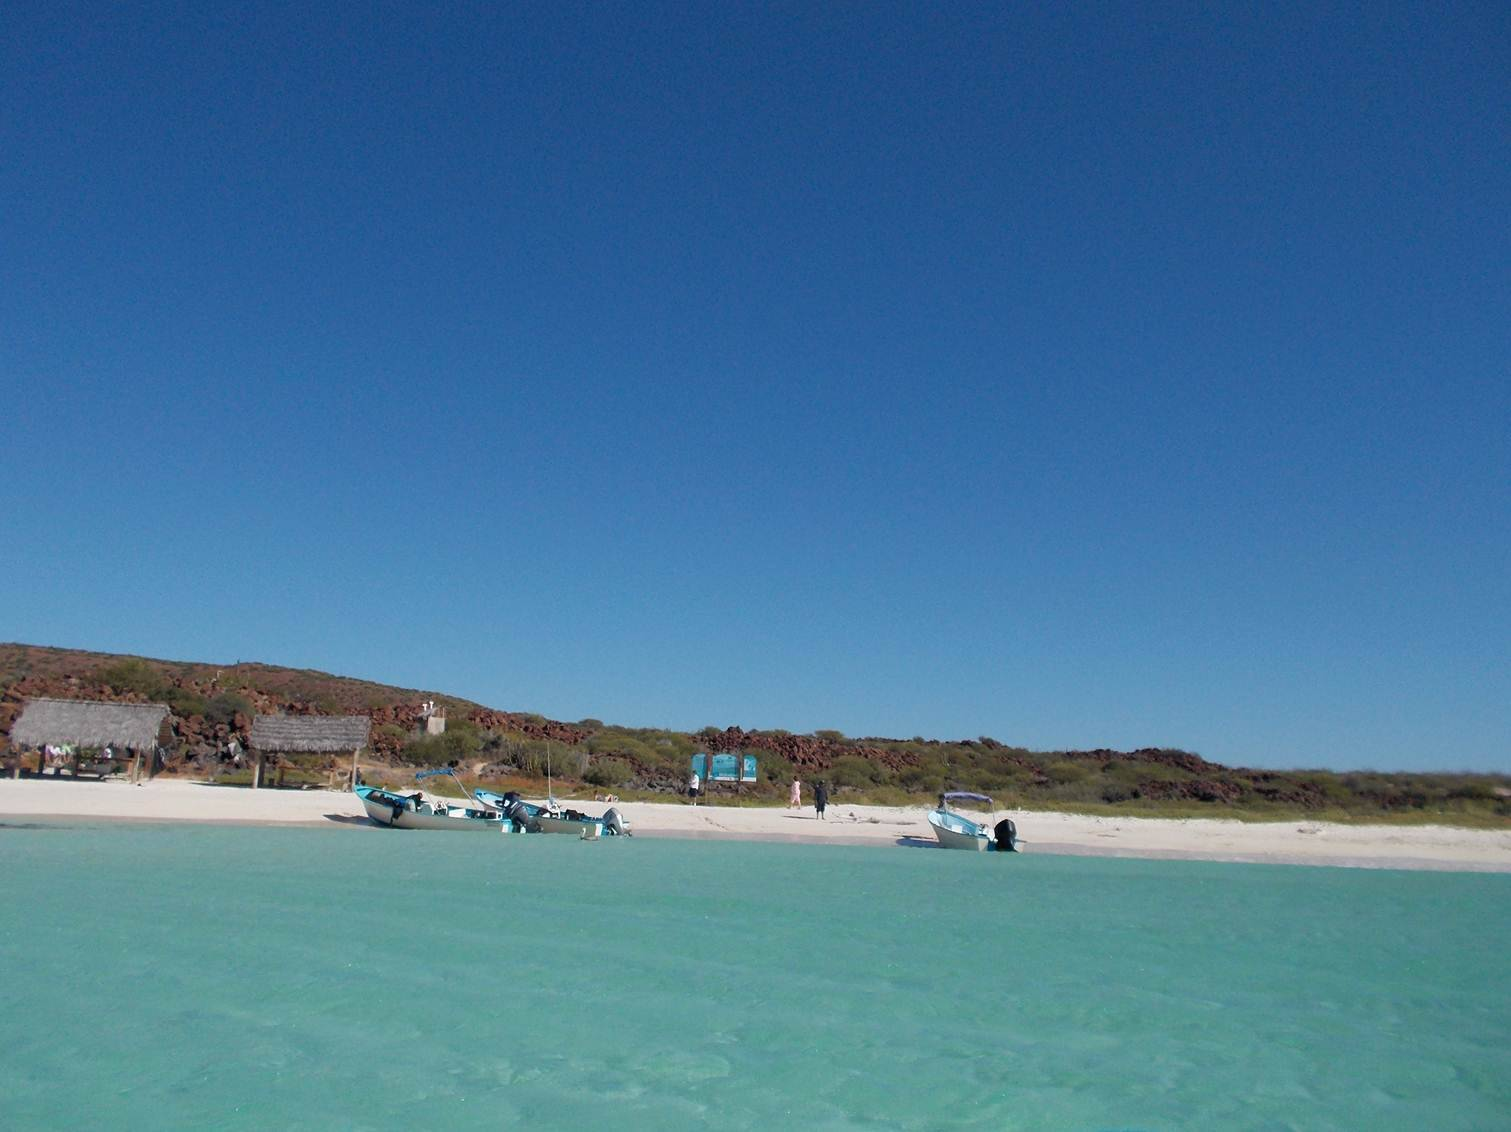 The white sand beach on Coronado Island in Loreto Bay National Marine Park in Loreto, Mexico, looks inviting.